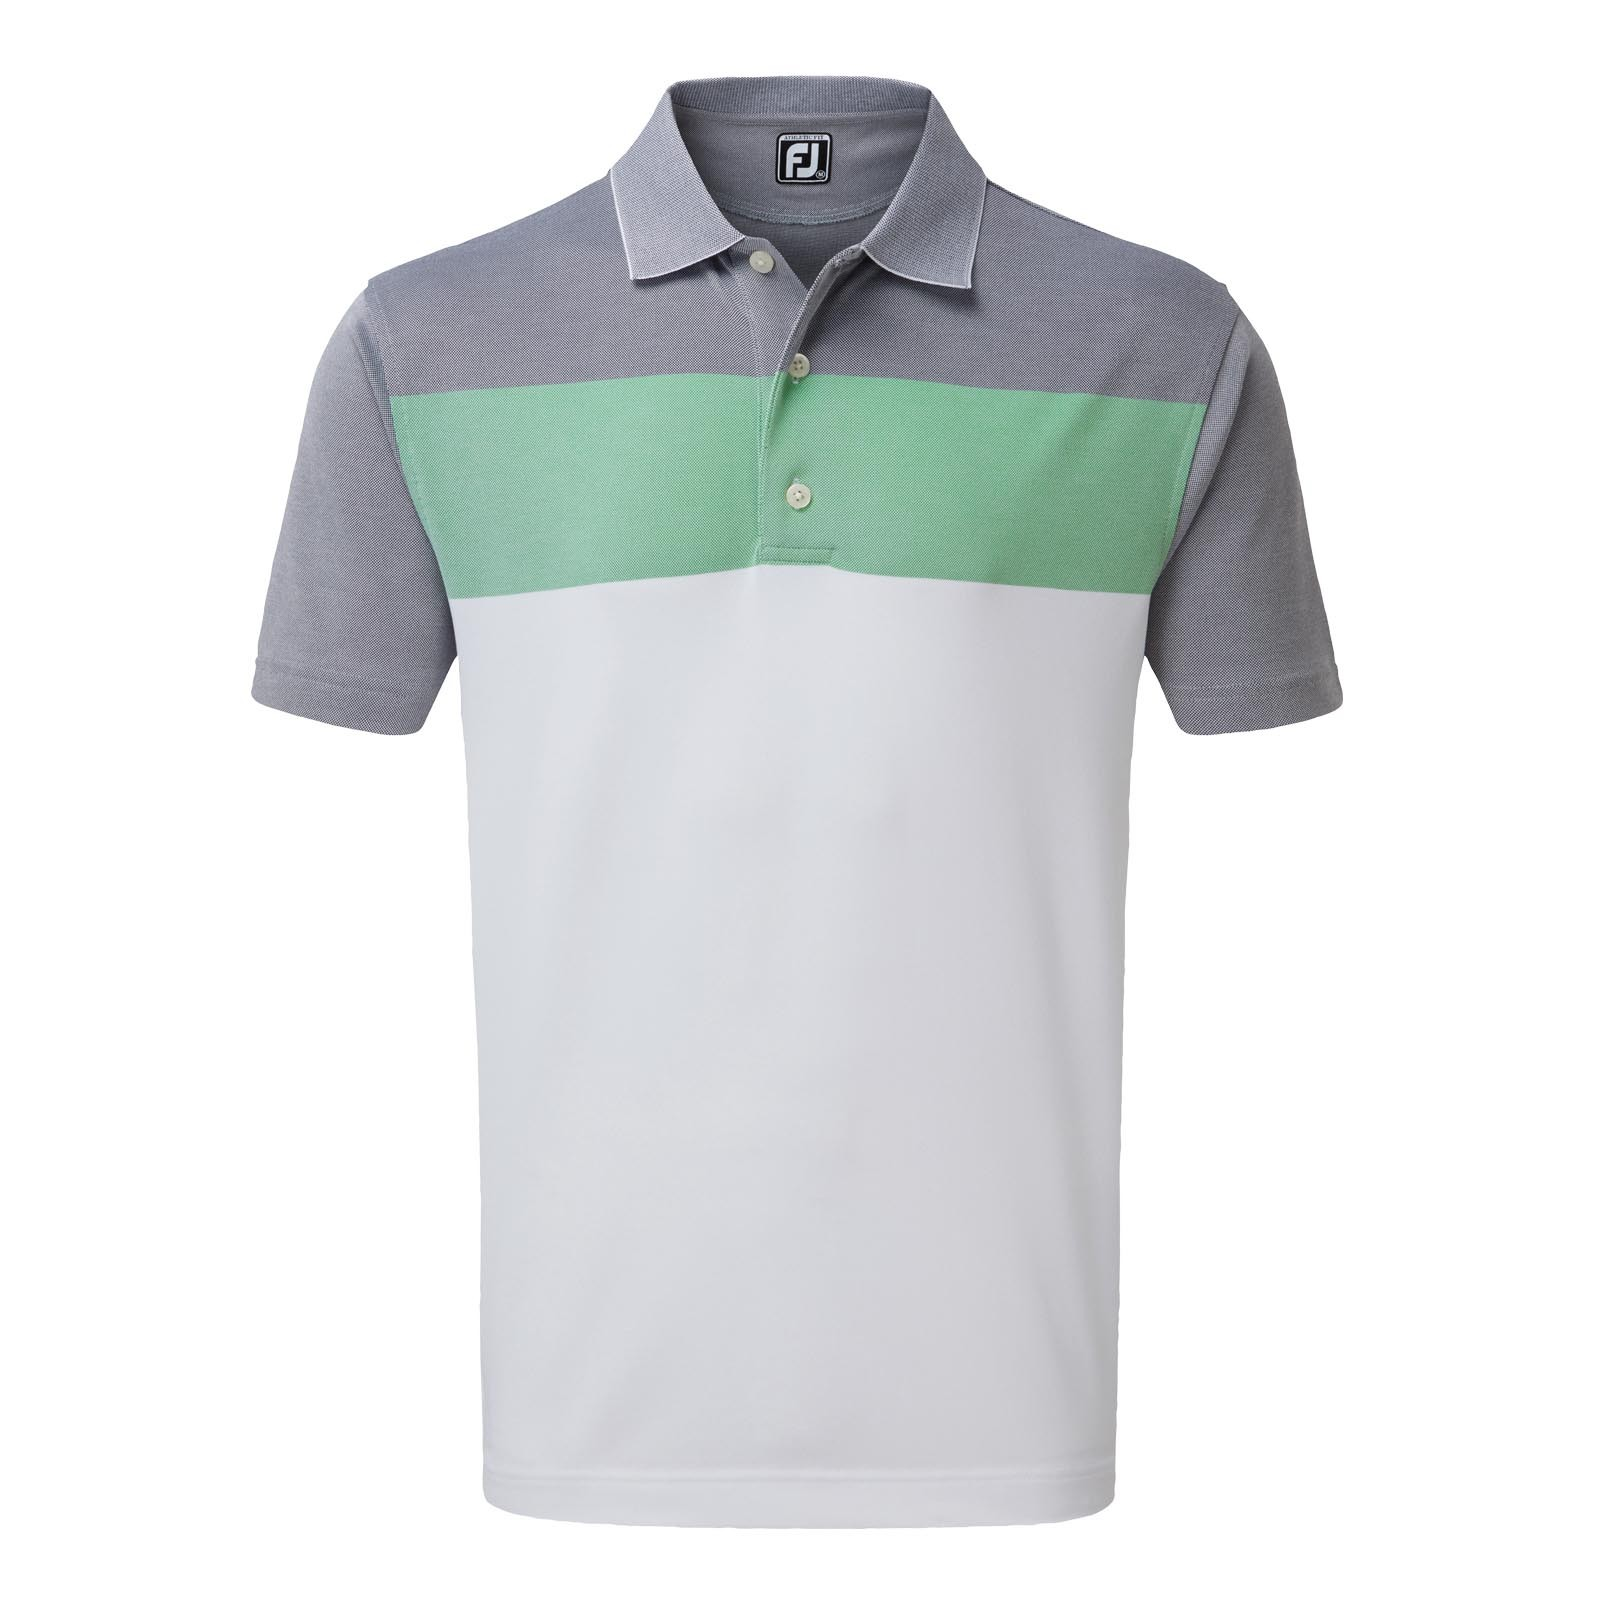 Footjoy Birdseye Jacquard Colour Block Polo